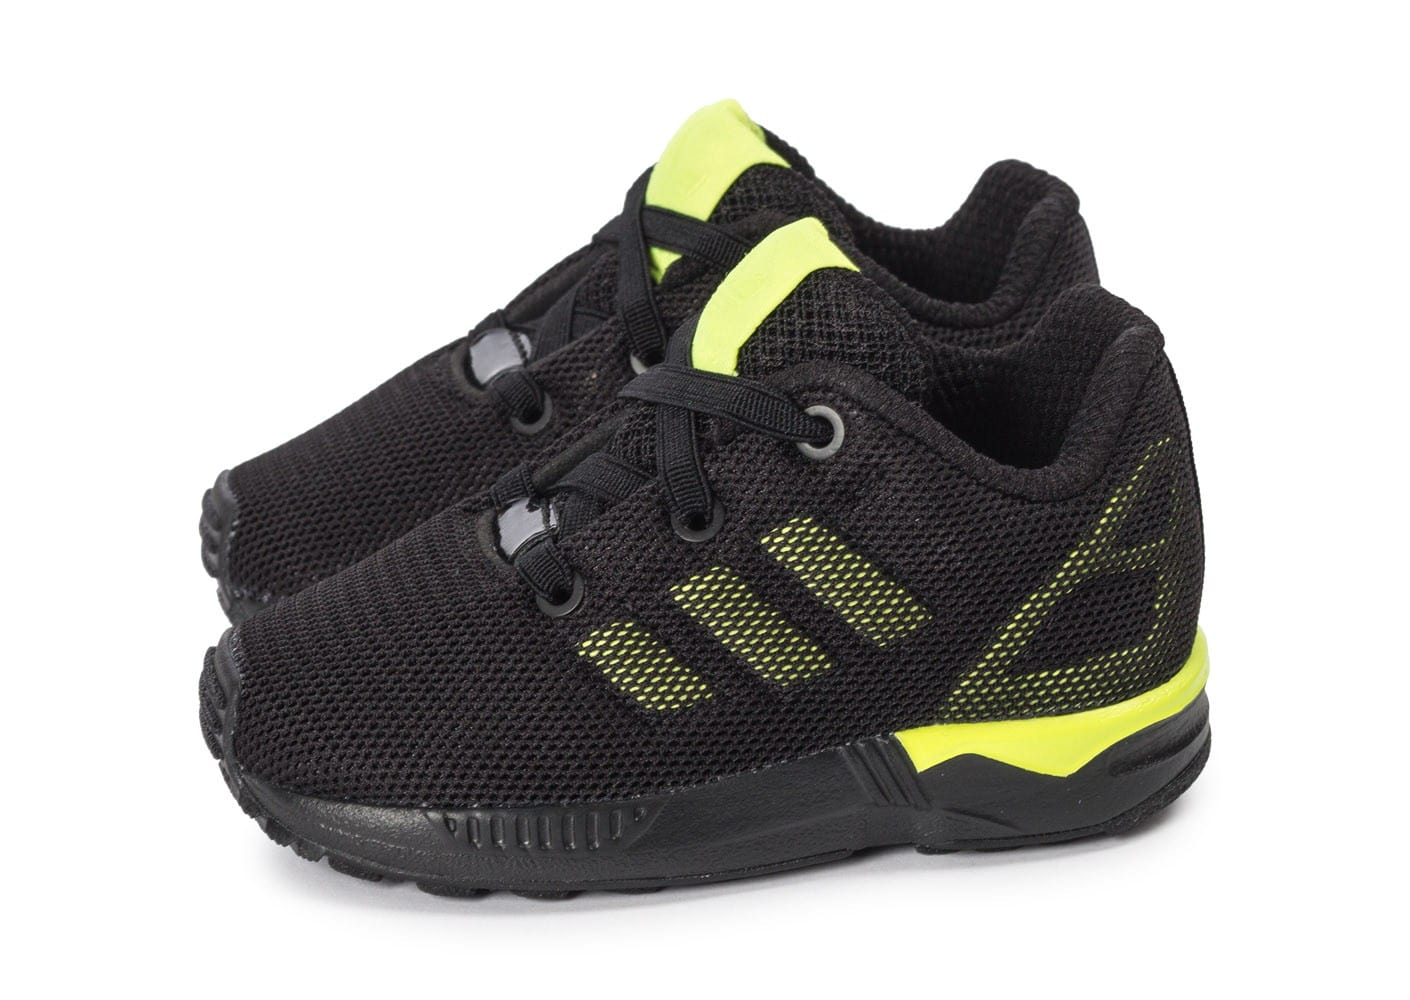 adidas zx flux lace adidas zx flux adv Noir and Blanc adidas zx